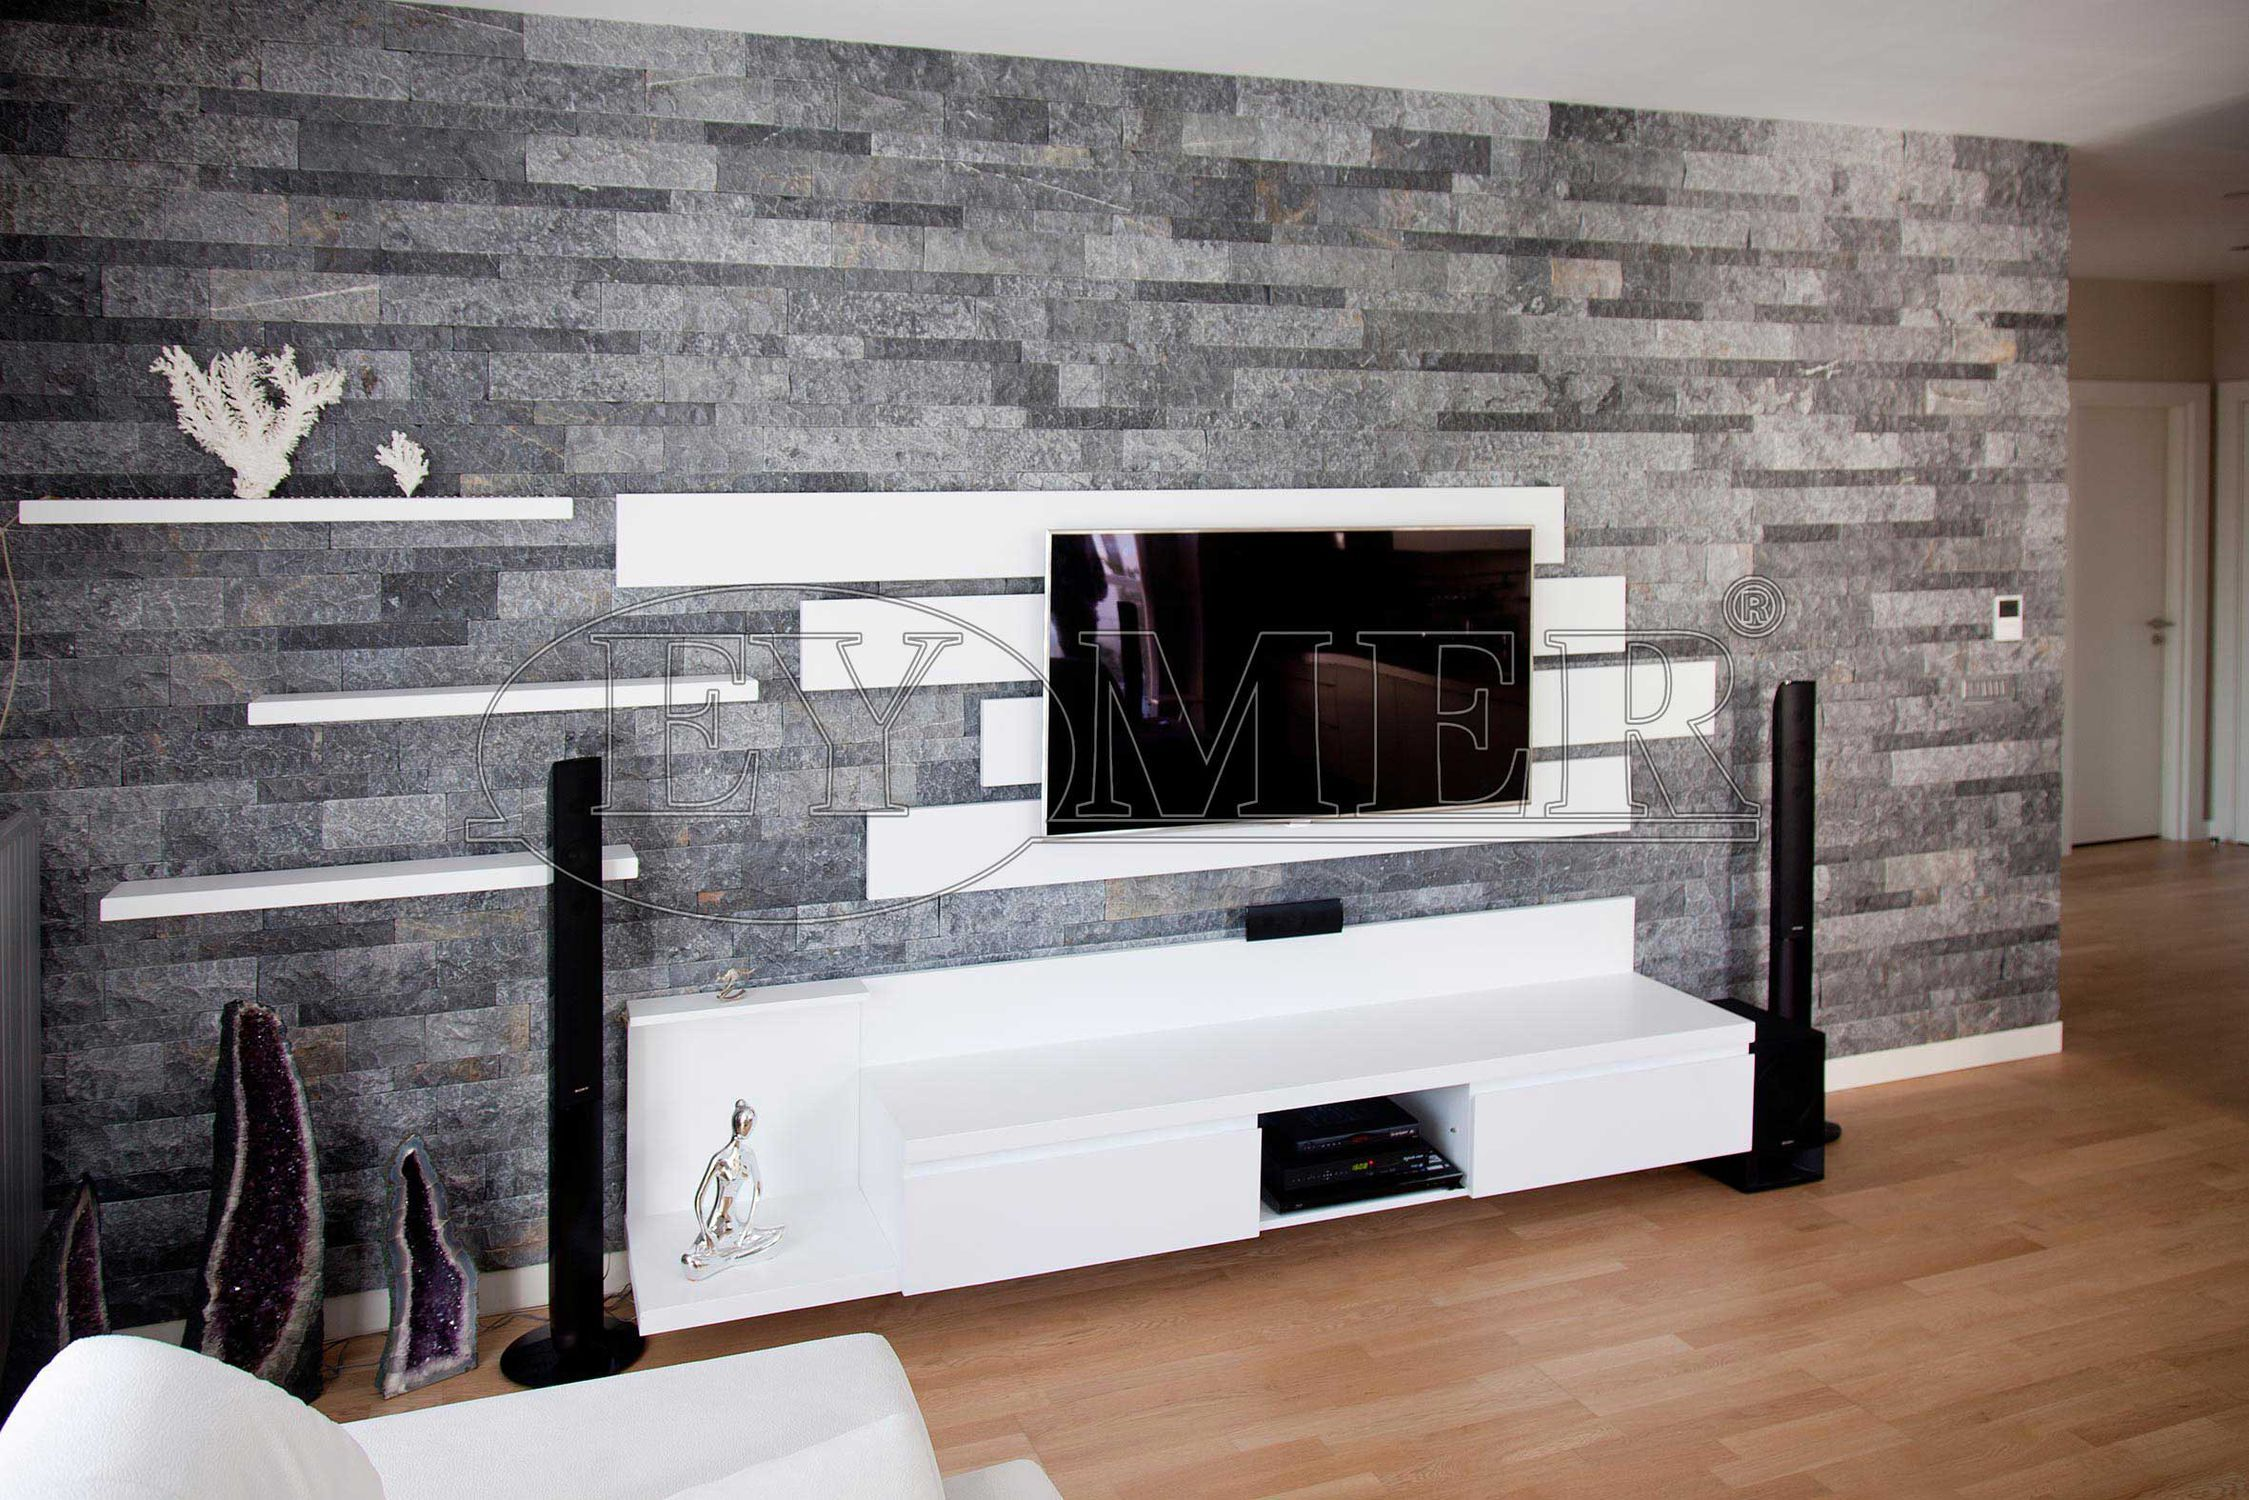 Stone marble granite exterior wall cladding view cladding wall - Awesome Marble Wall Cladding Outdoor Indoor Decorative Black Marble Antique Tumbled With Marble Wall Cladding Designs